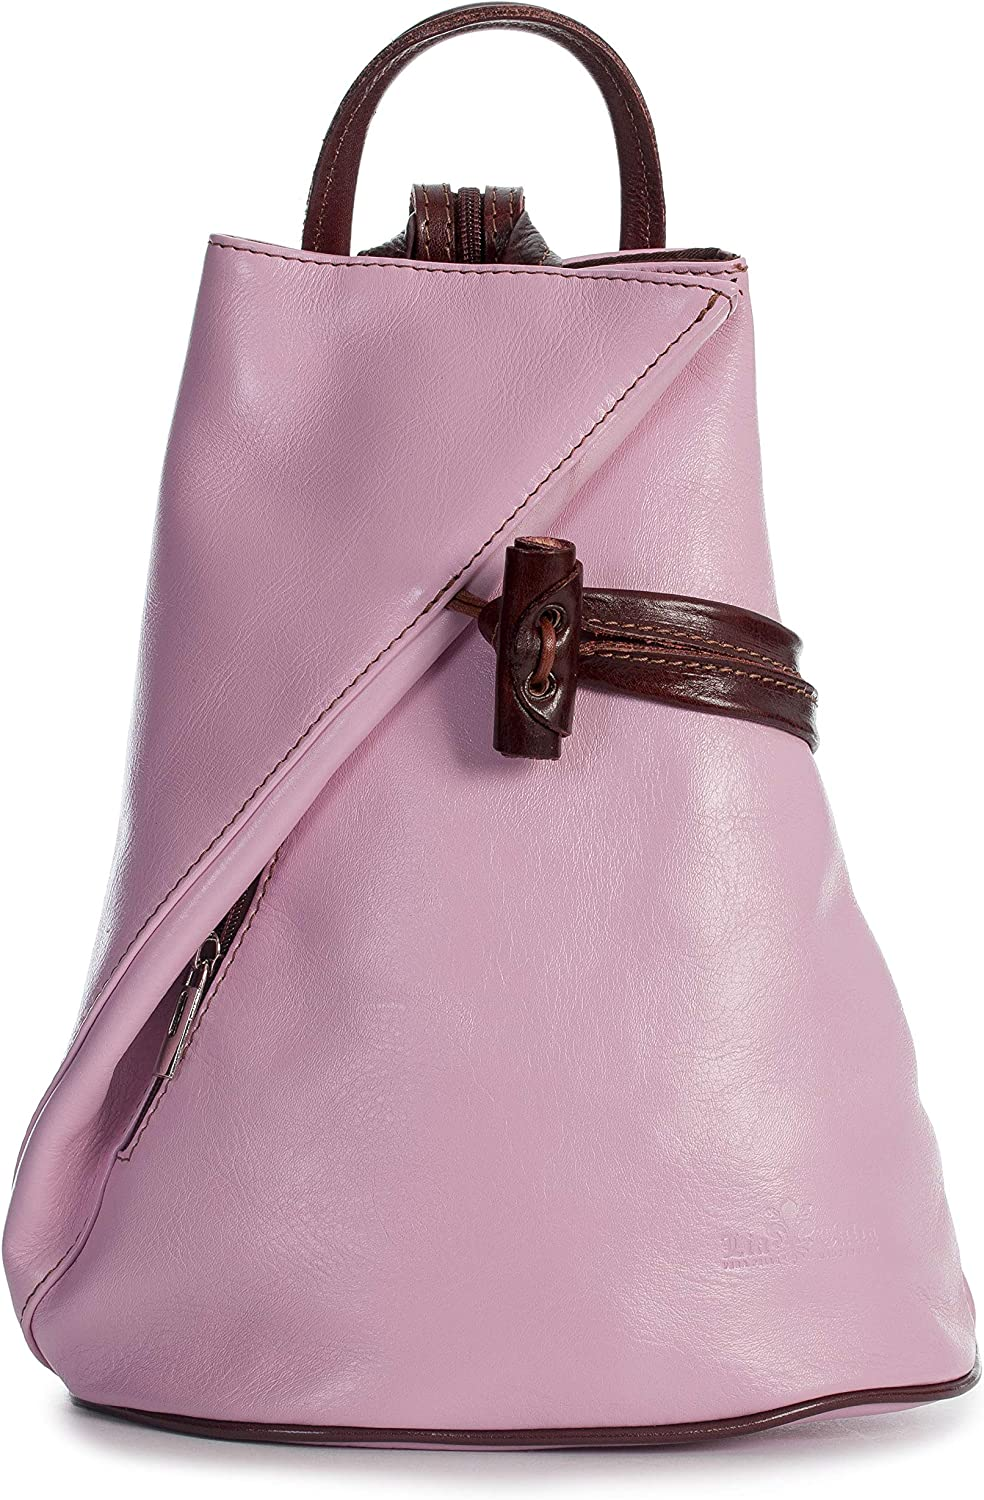 LIATALIA Italian Leather Backpack Shoulder Bag with Sling Convertible Strap in Medium Large Size - BRADY